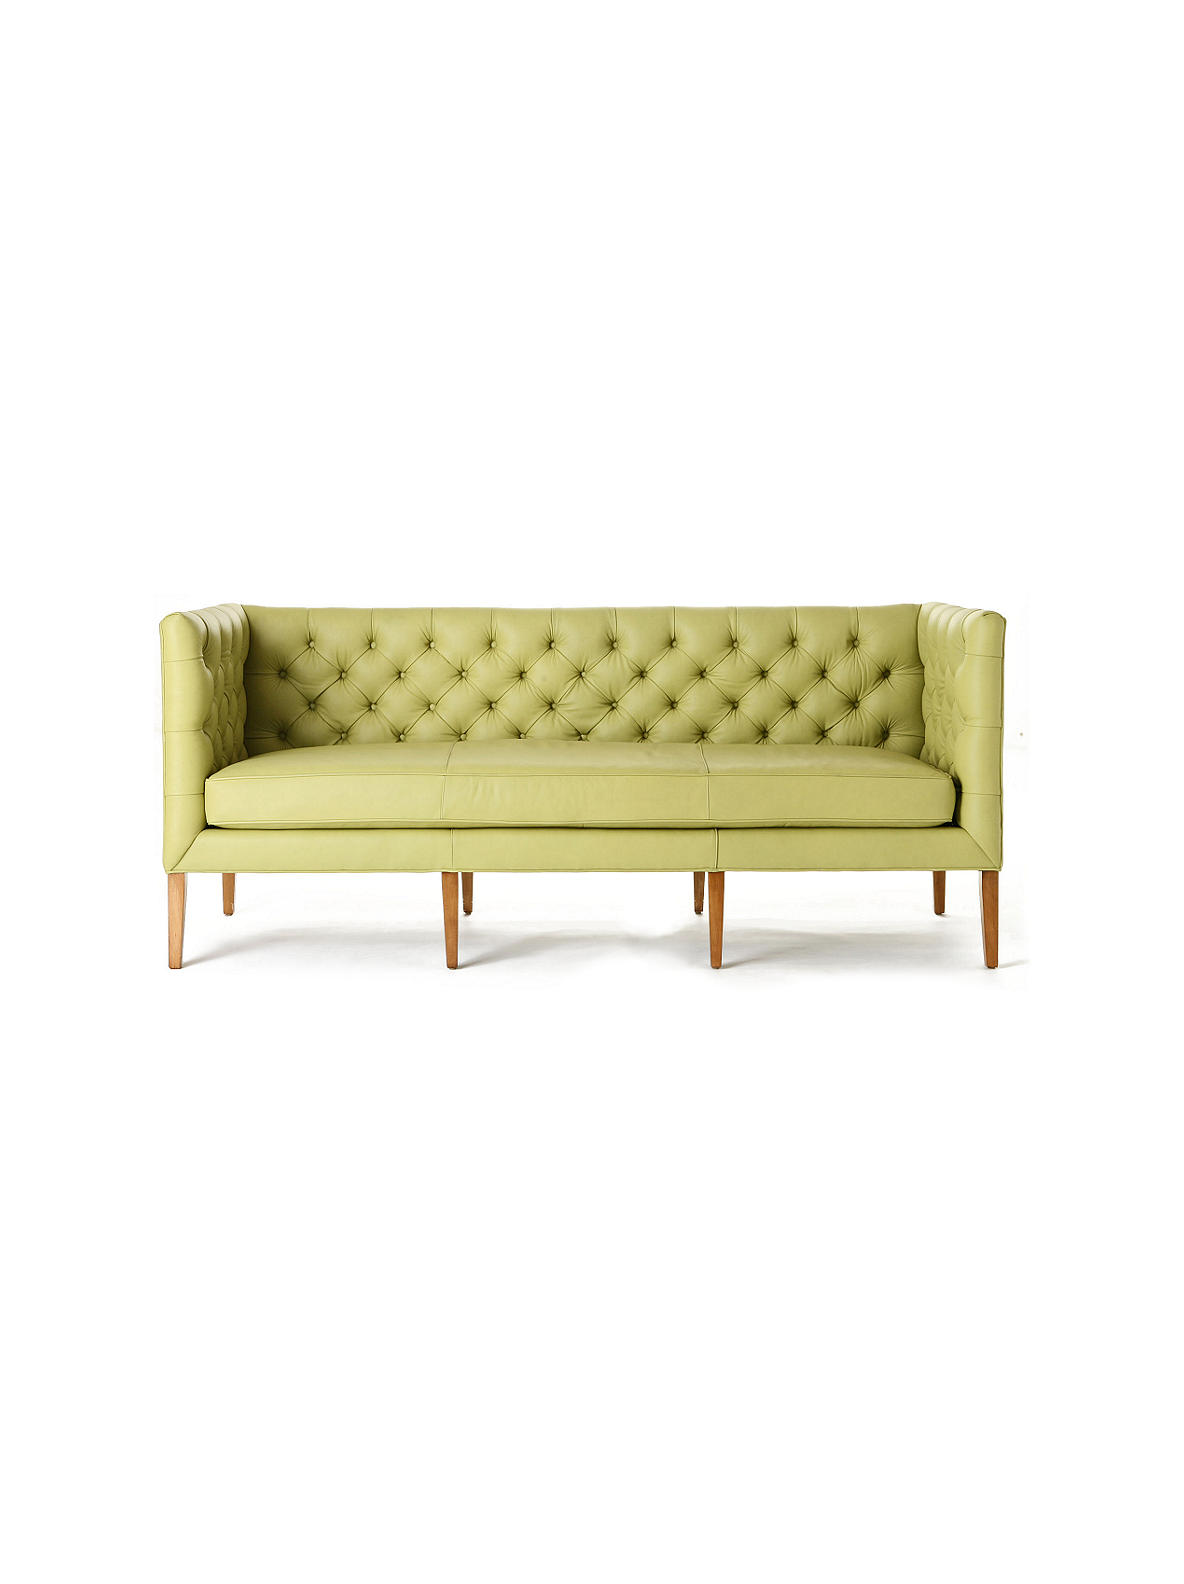 Tufted Ditte Sofa  - Anthropologie.com :  furniture sofa tufted anthropologie